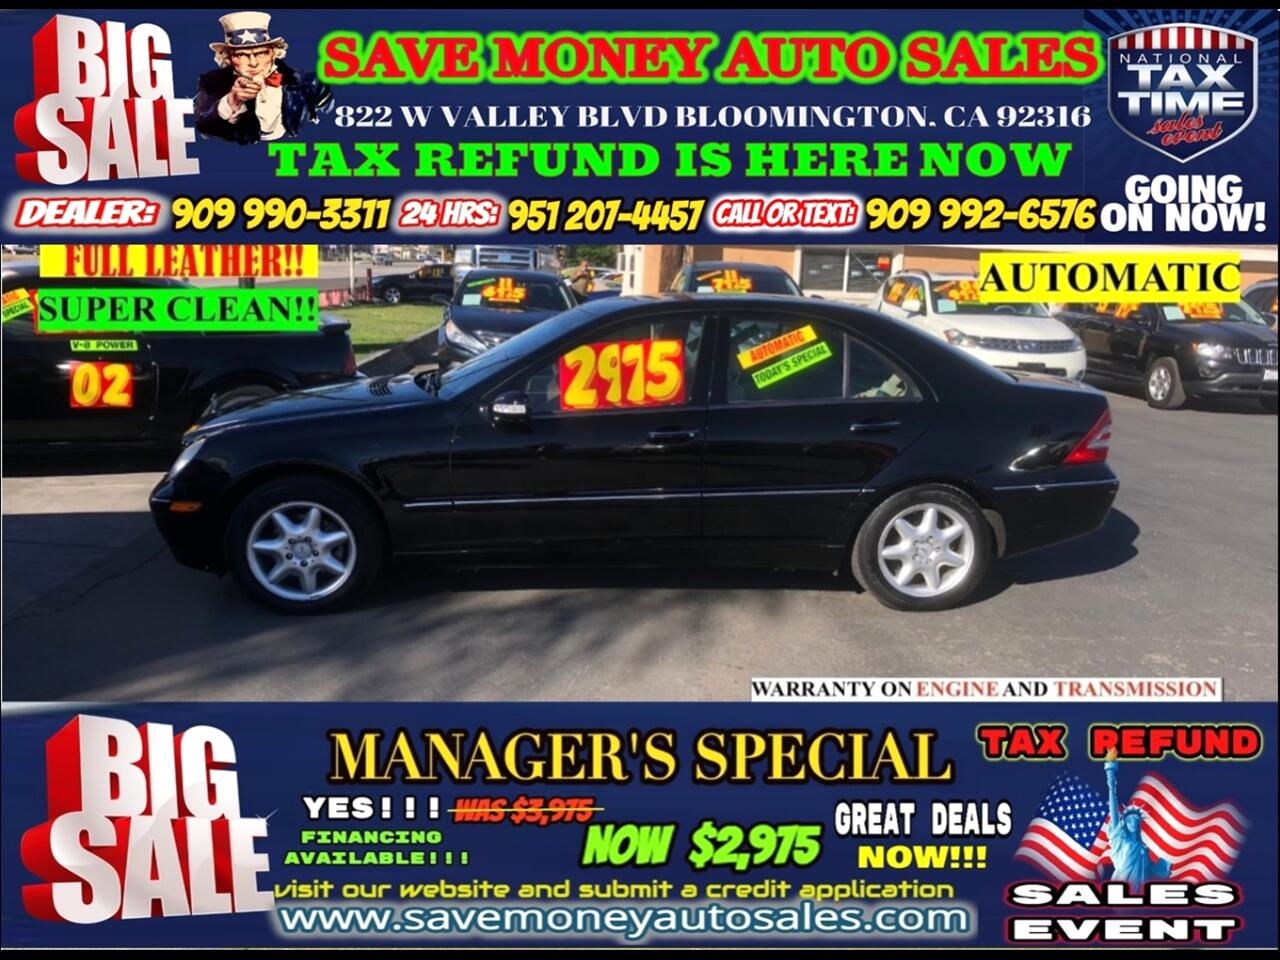 2002 Mercedes-Benz C-Class C240 SEDAN>>BLUETOOTH,FULLY LOADED WE MEANT IT!!!!